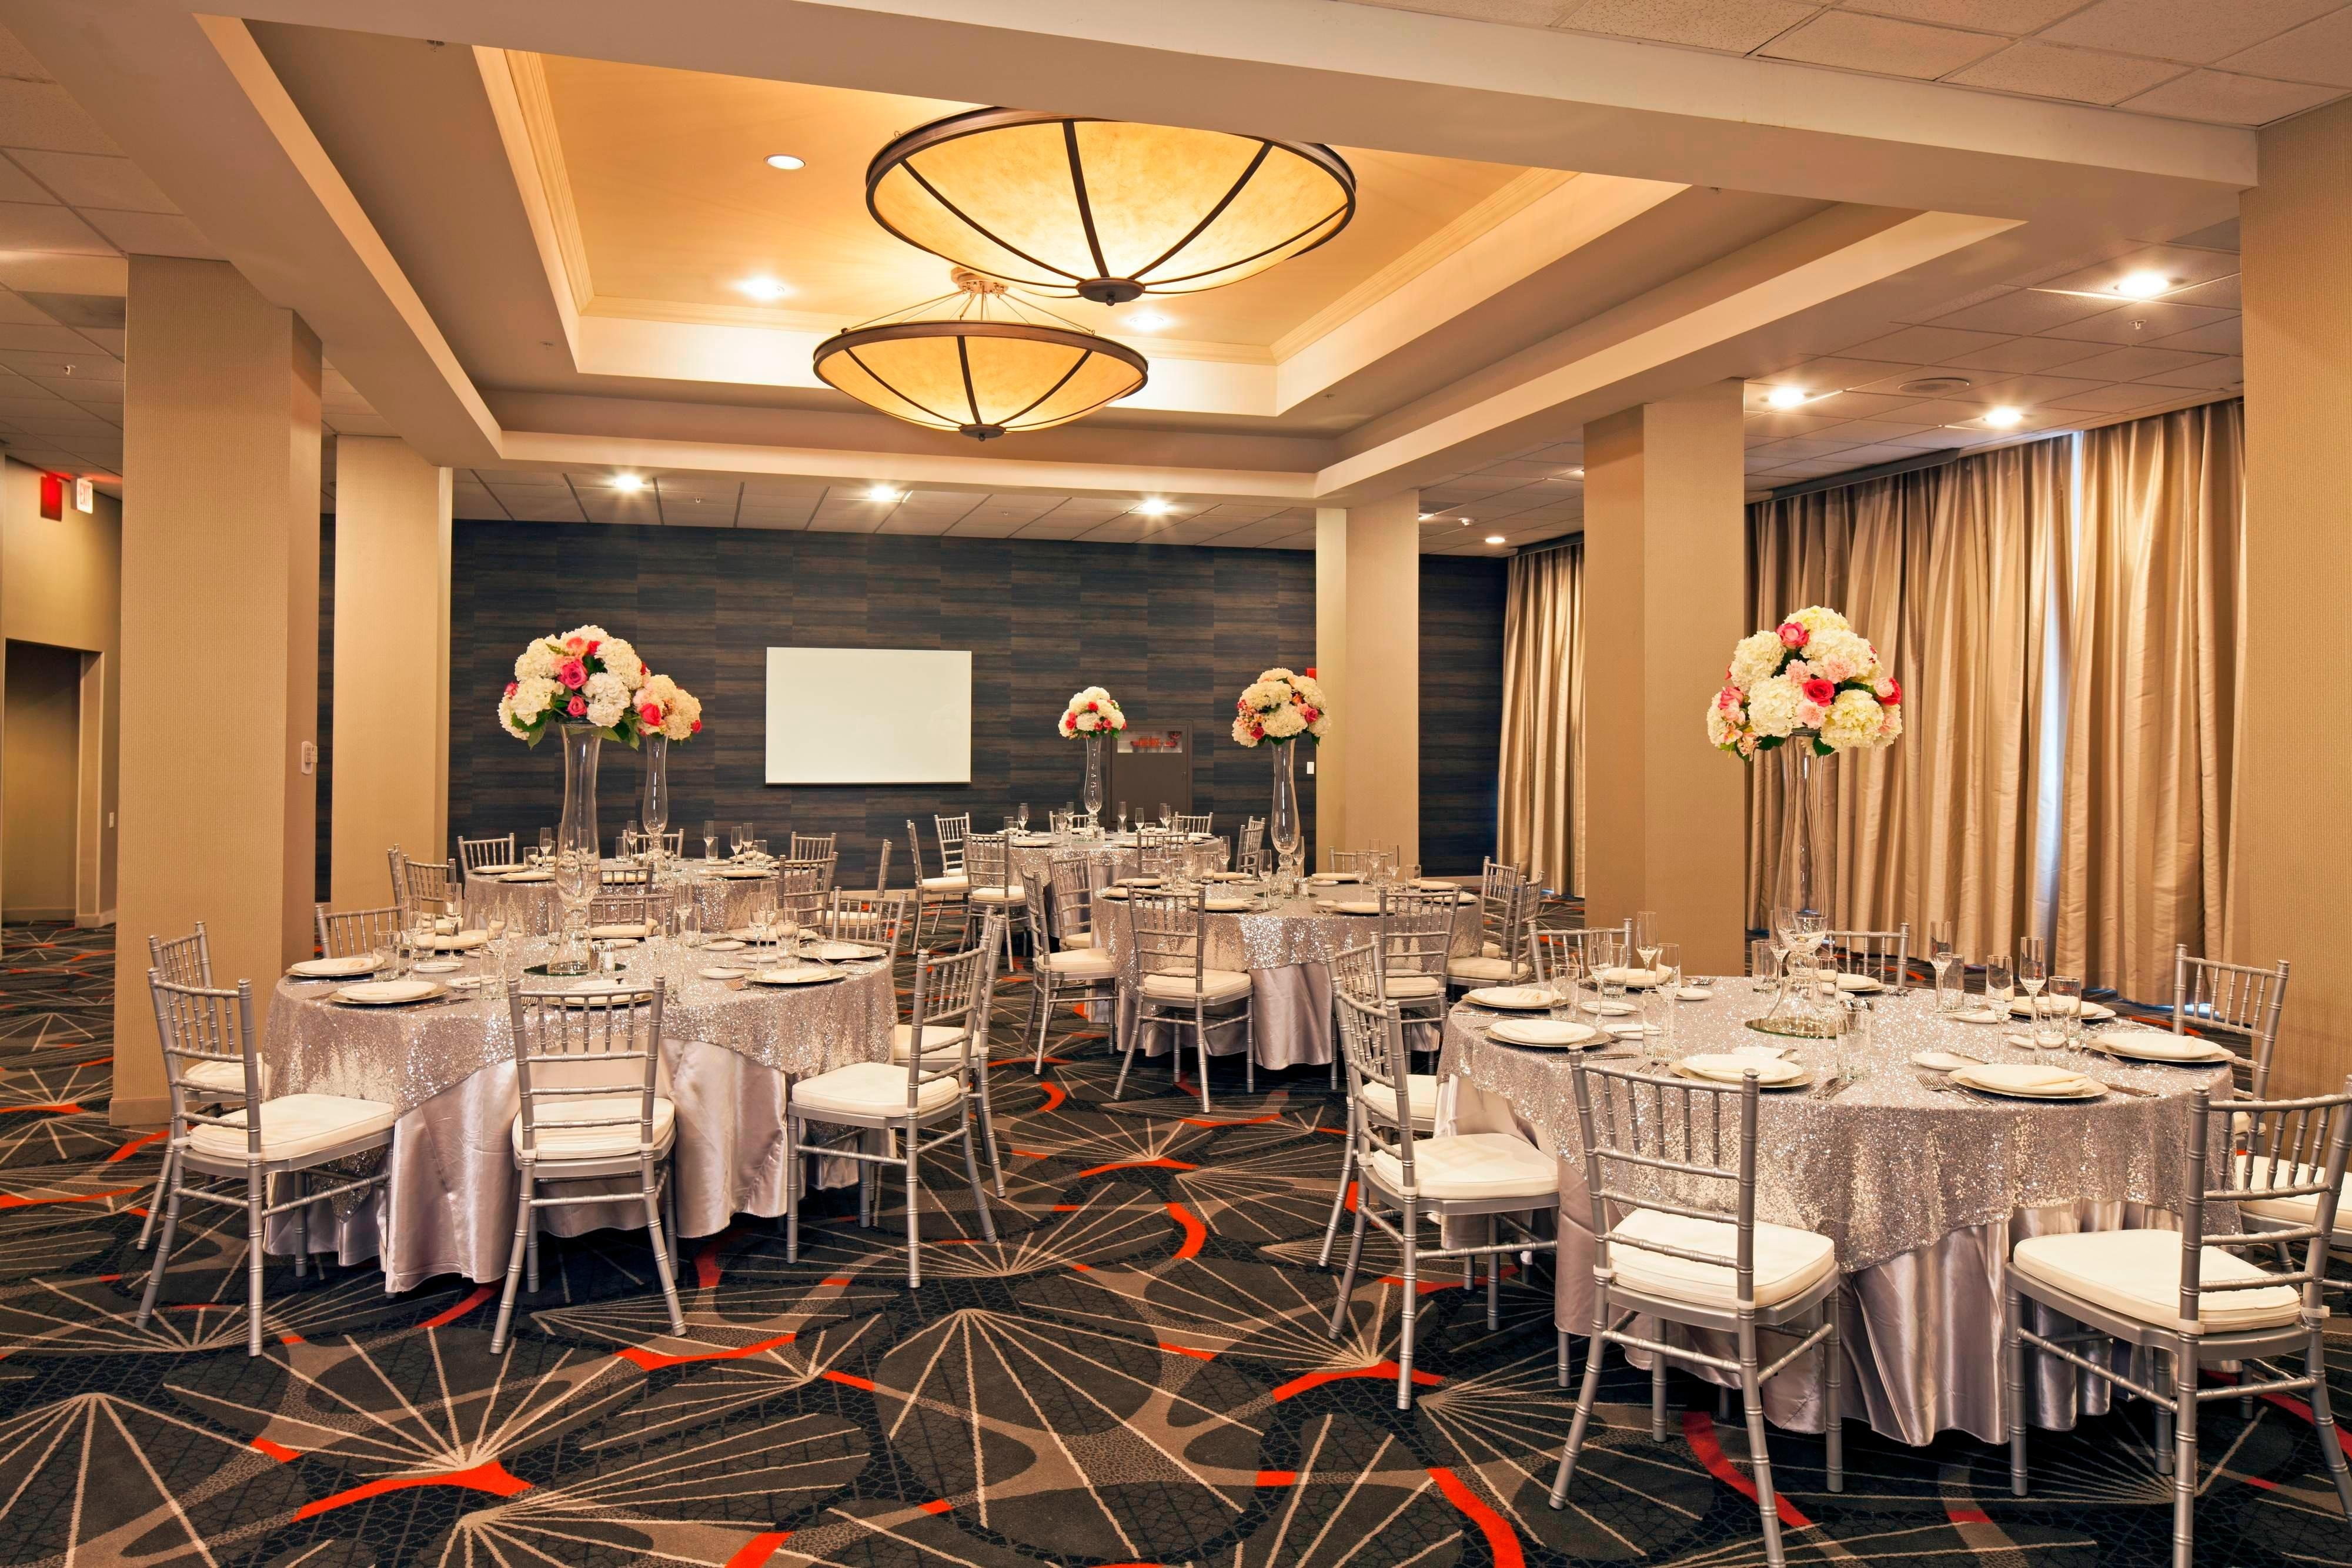 Wedding reception venue San Diego